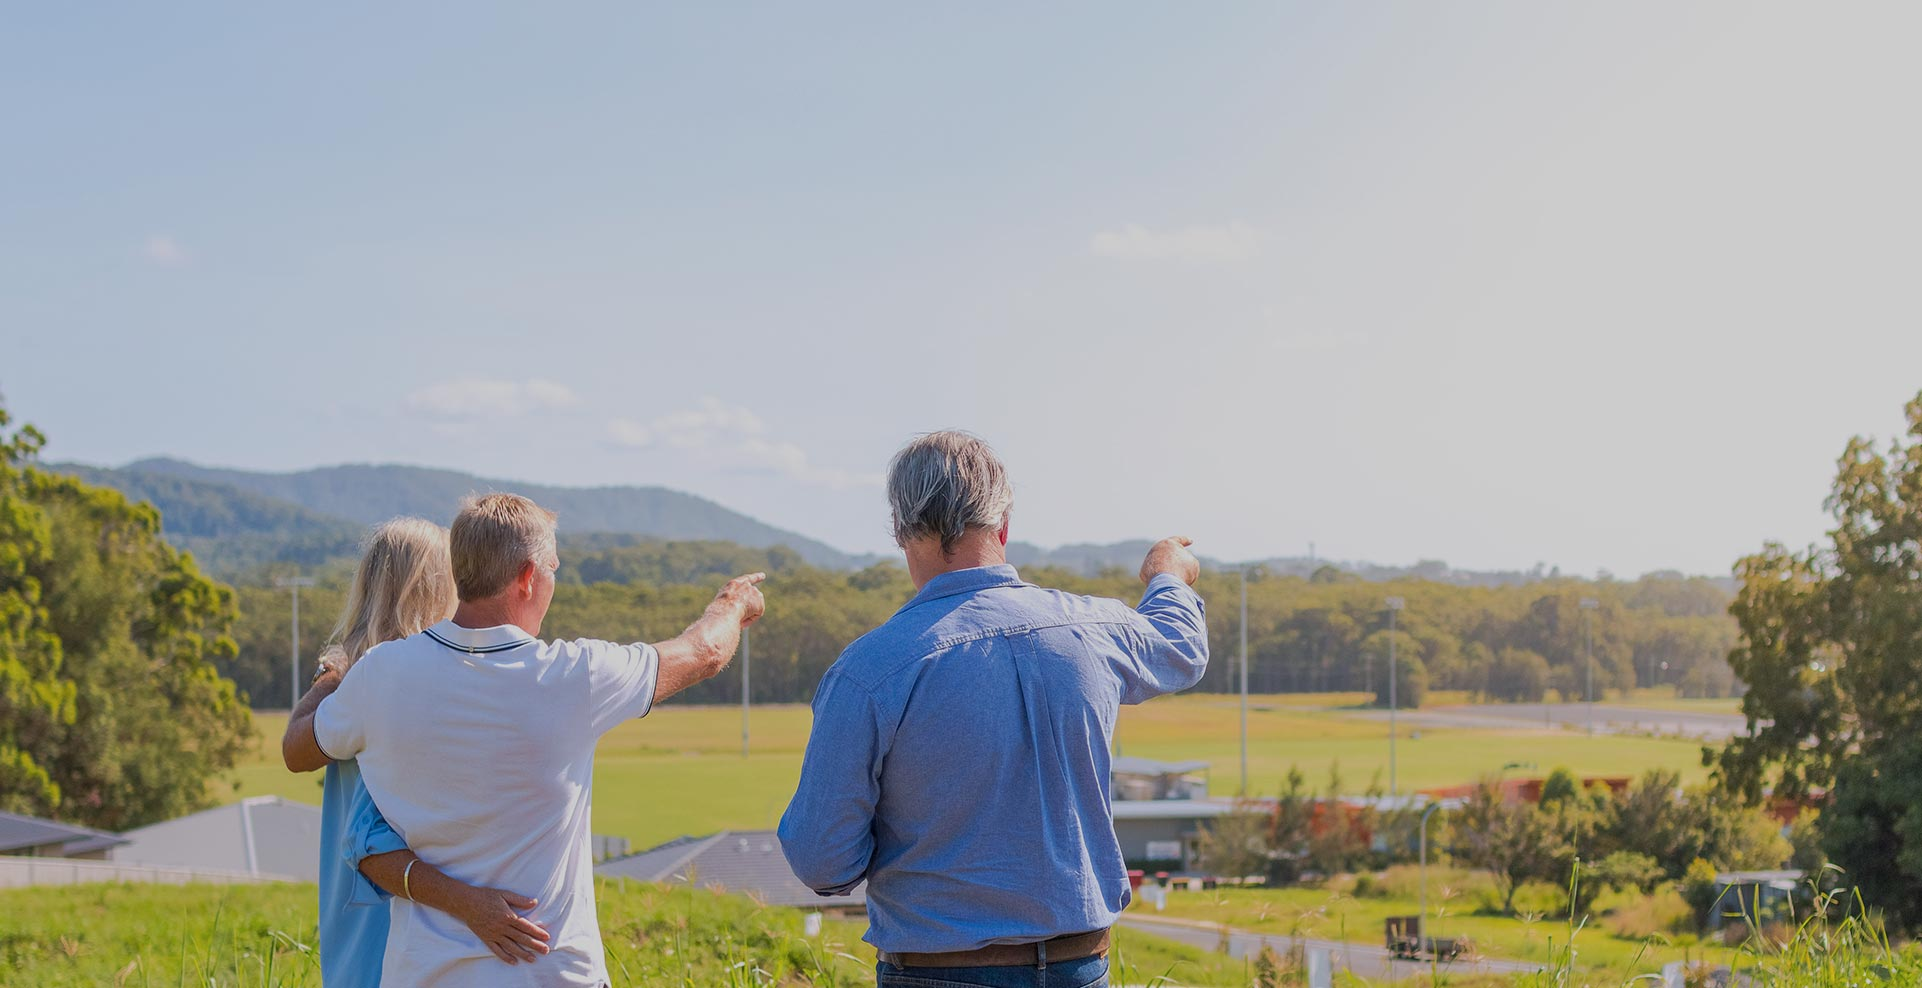 Land to build on in Coffs Harbour